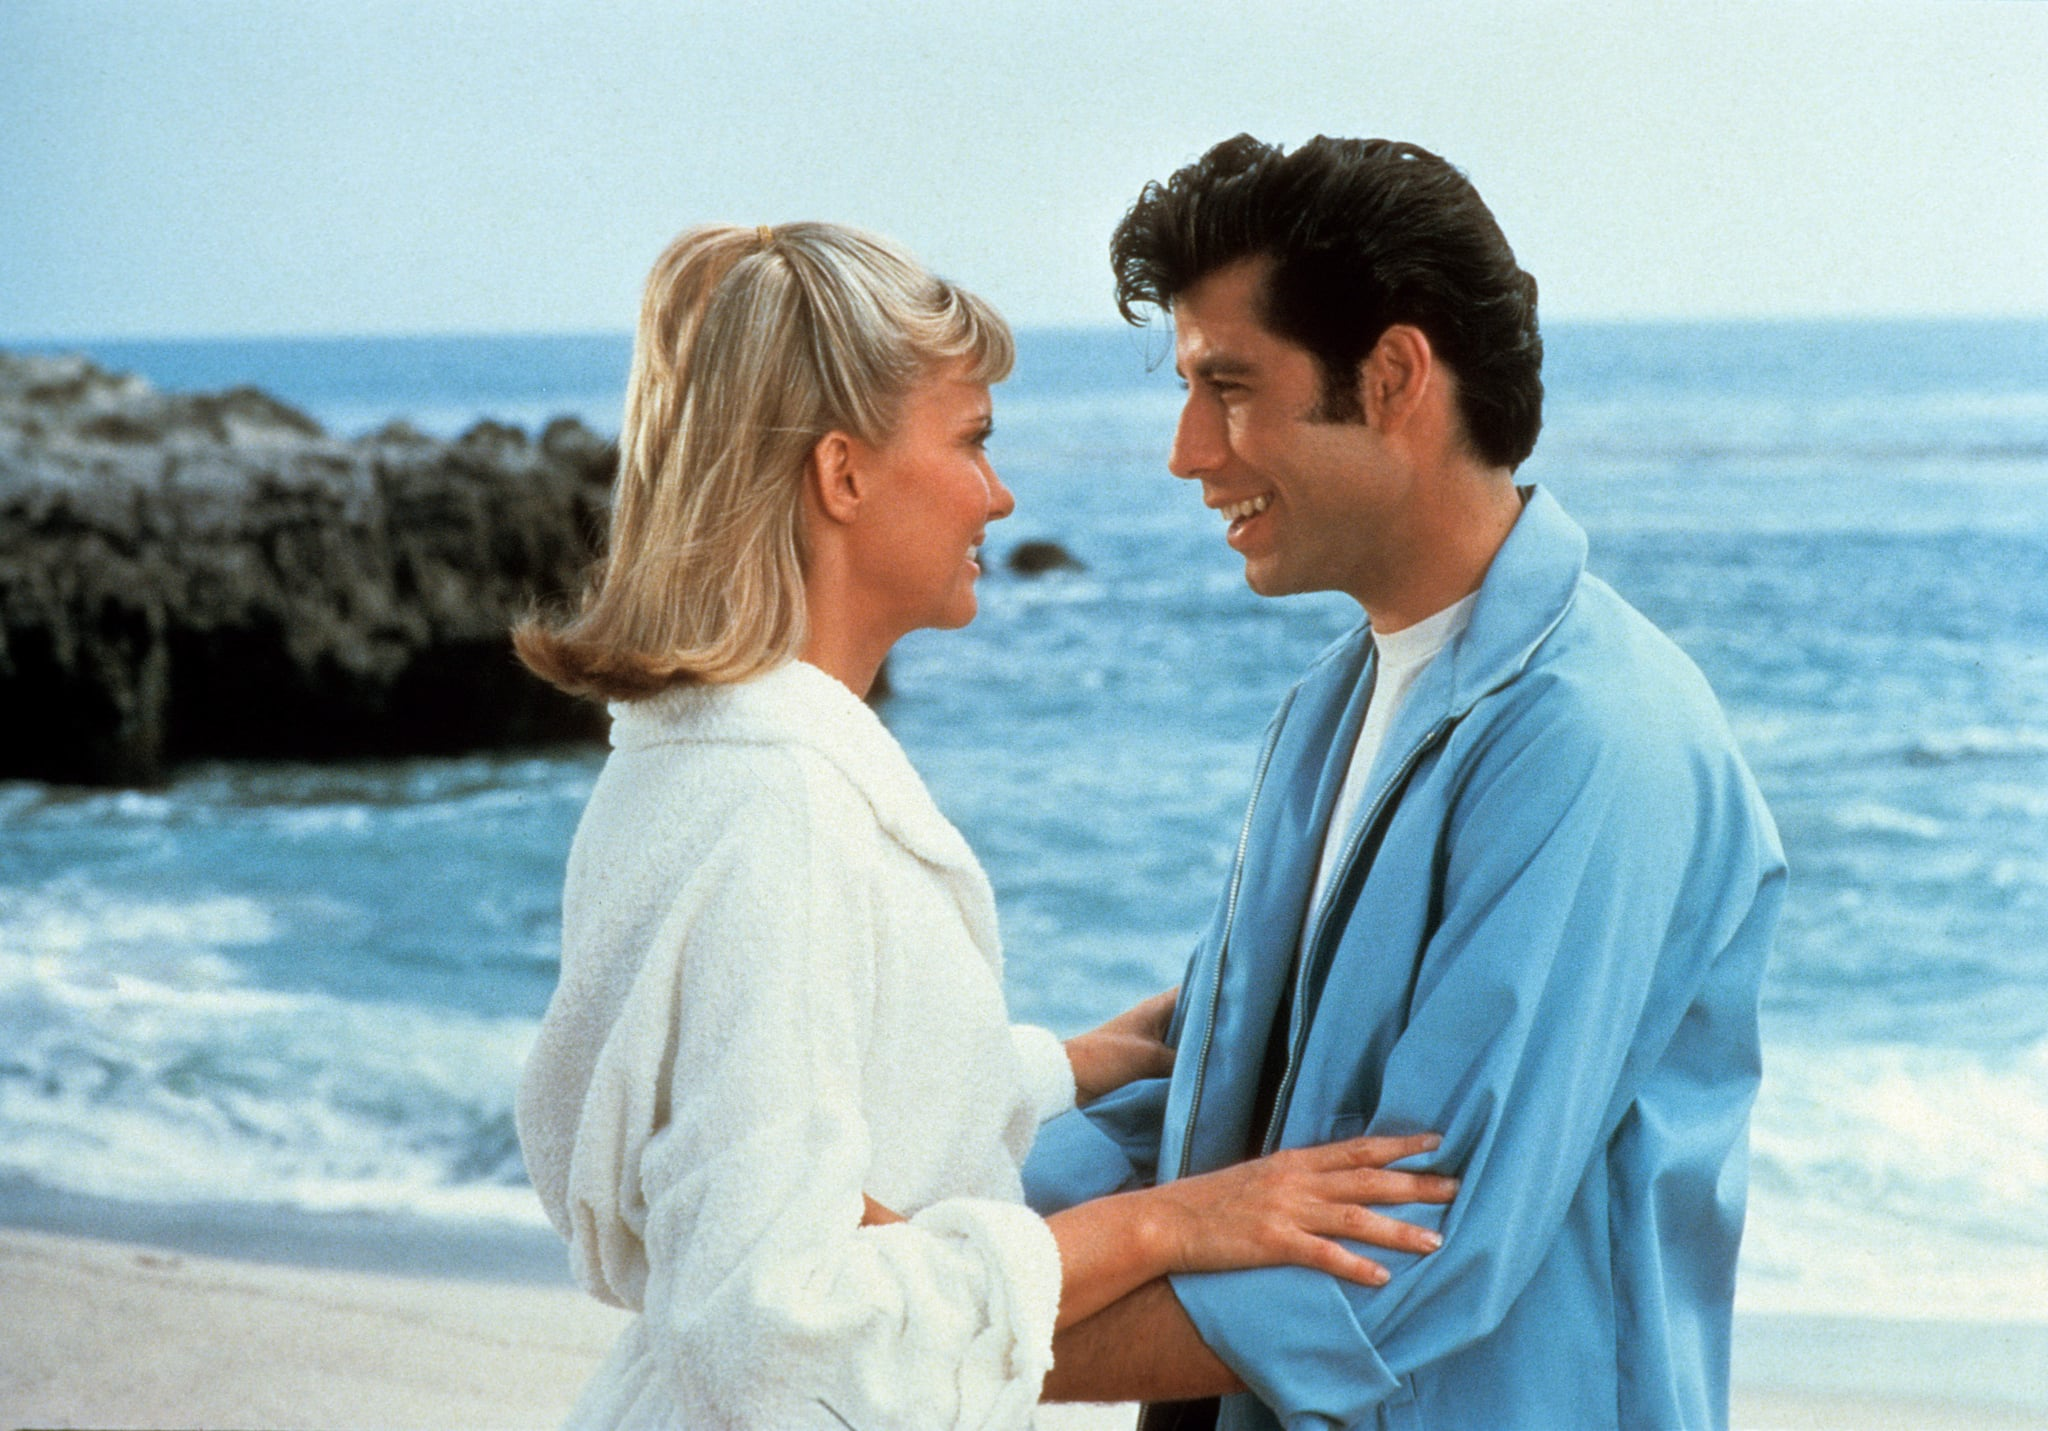 GREASE, Olivia Newton-John, John Travolta, 1978.  Paramount Pictures/ Courtesy: Everett Collection